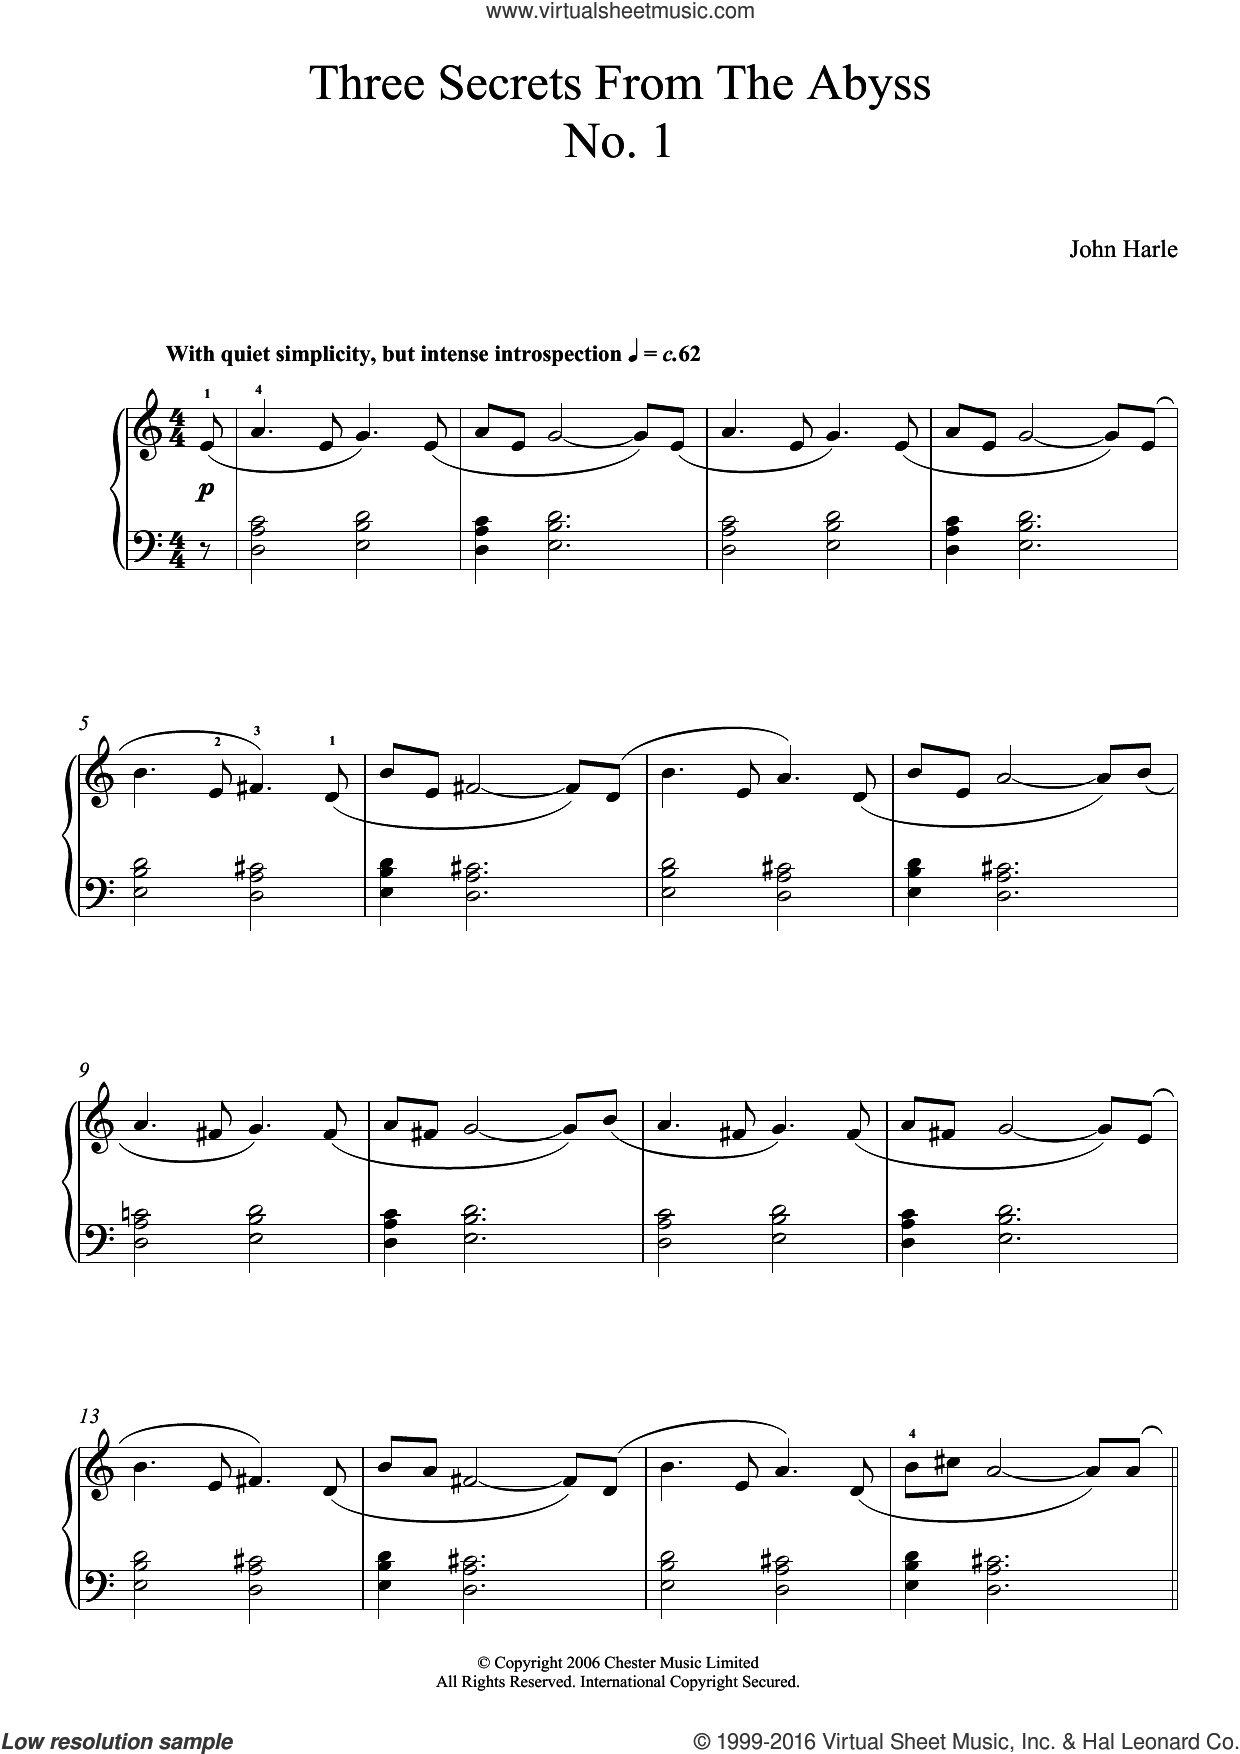 Three Secrets From The Abyss - No. 1 sheet music for piano solo by John Harle. Score Image Preview.